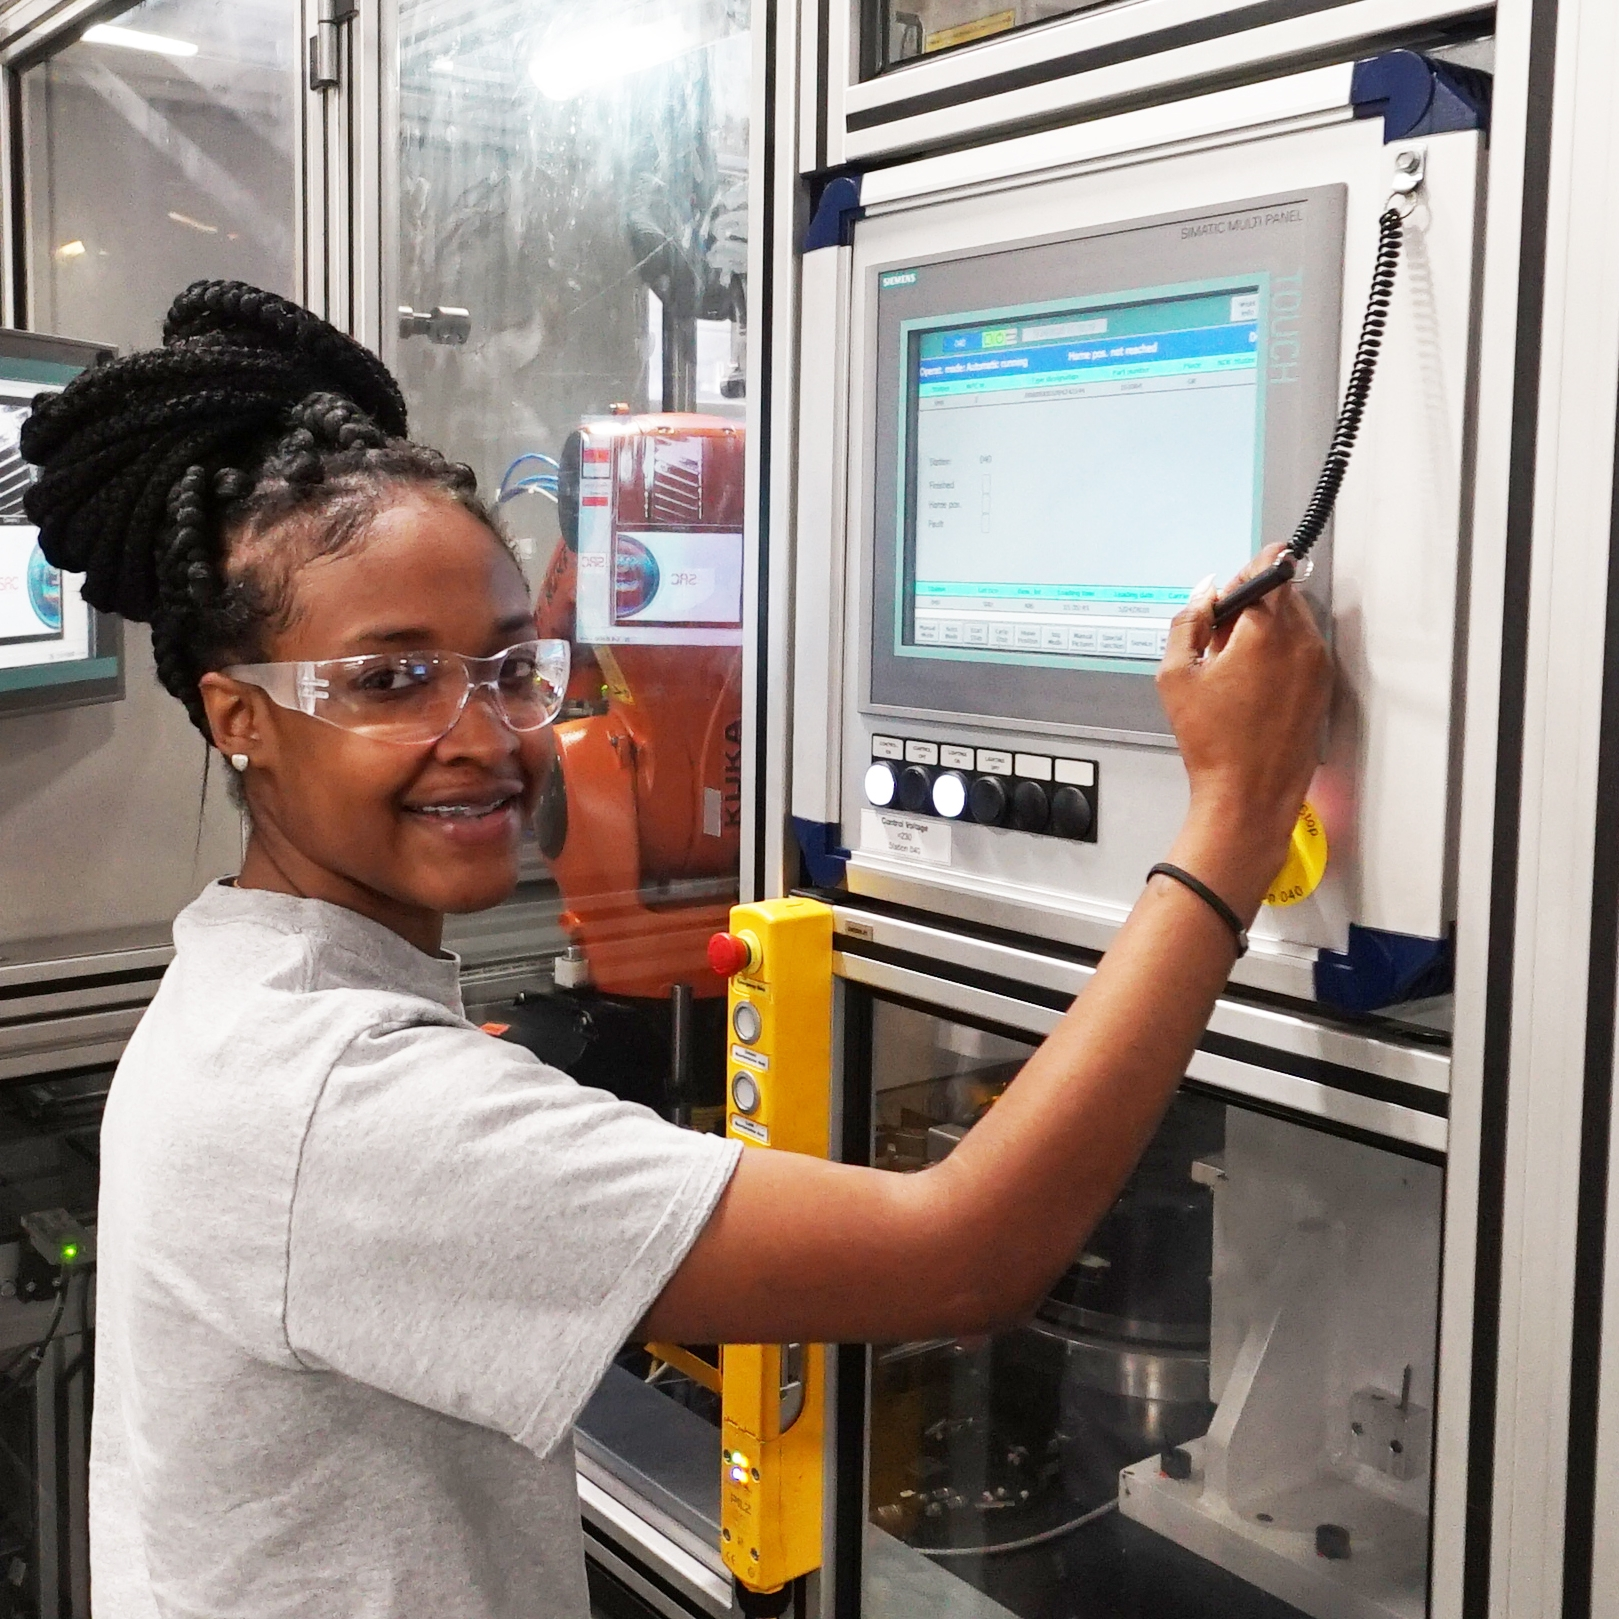 Travisia - Just three years out of high school, Piedmont Tech graduate Travisia Thompson may be earning upwards of $60,000 a year.Let that sink in for a moment.This virtually unheard-of earning potential is quite literally possible.